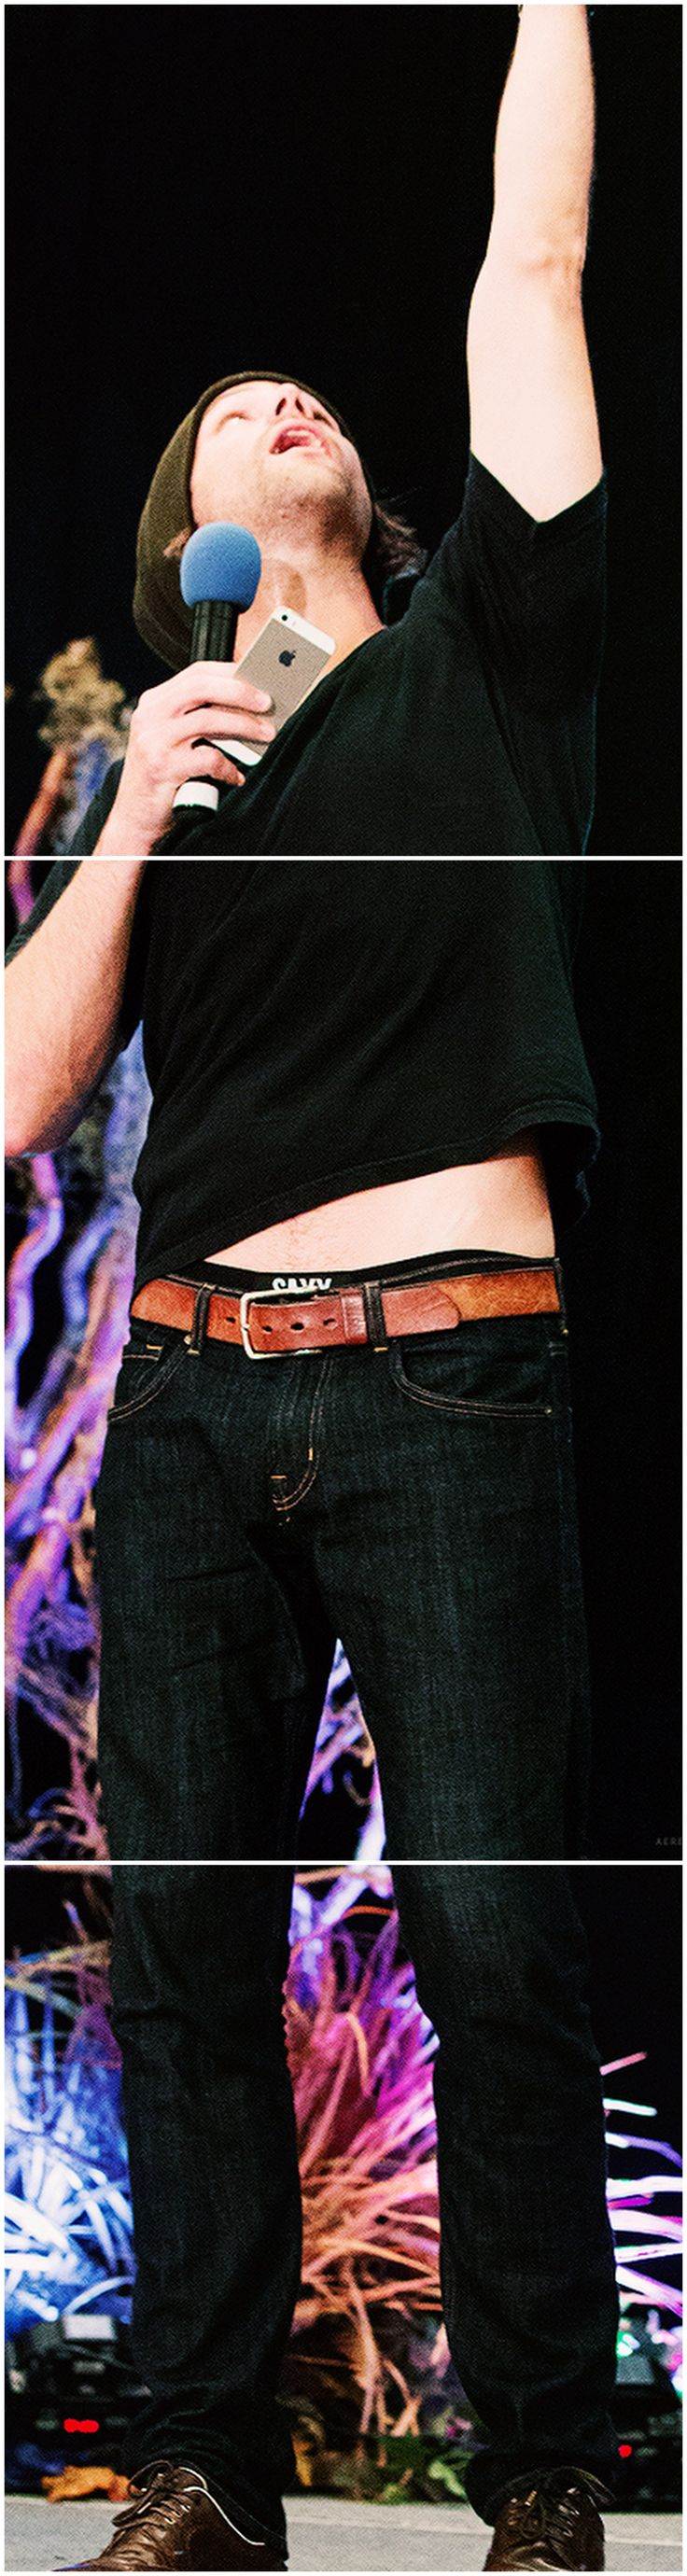 Jared you HAVE to have borrowed one of Jensen's t-shirts I mean come on... #solong #imadroolingmess